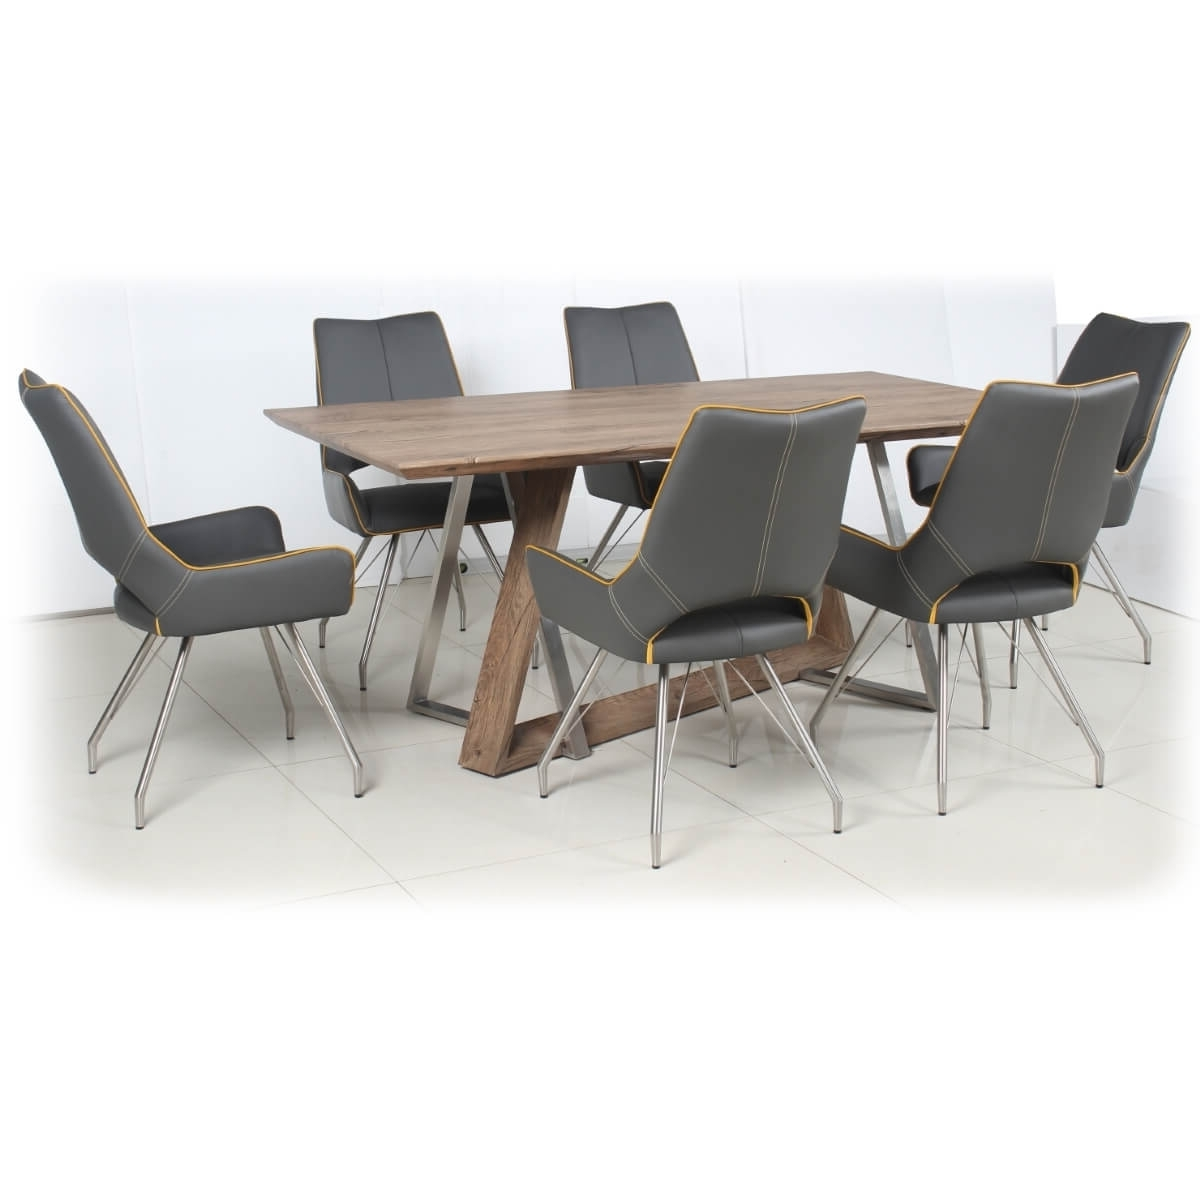 Trendy Dining Set – Industrial Style Wood Dining Table And 6 Grey Dining Pertaining To Industrial Style Dining Tables (View 22 of 25)